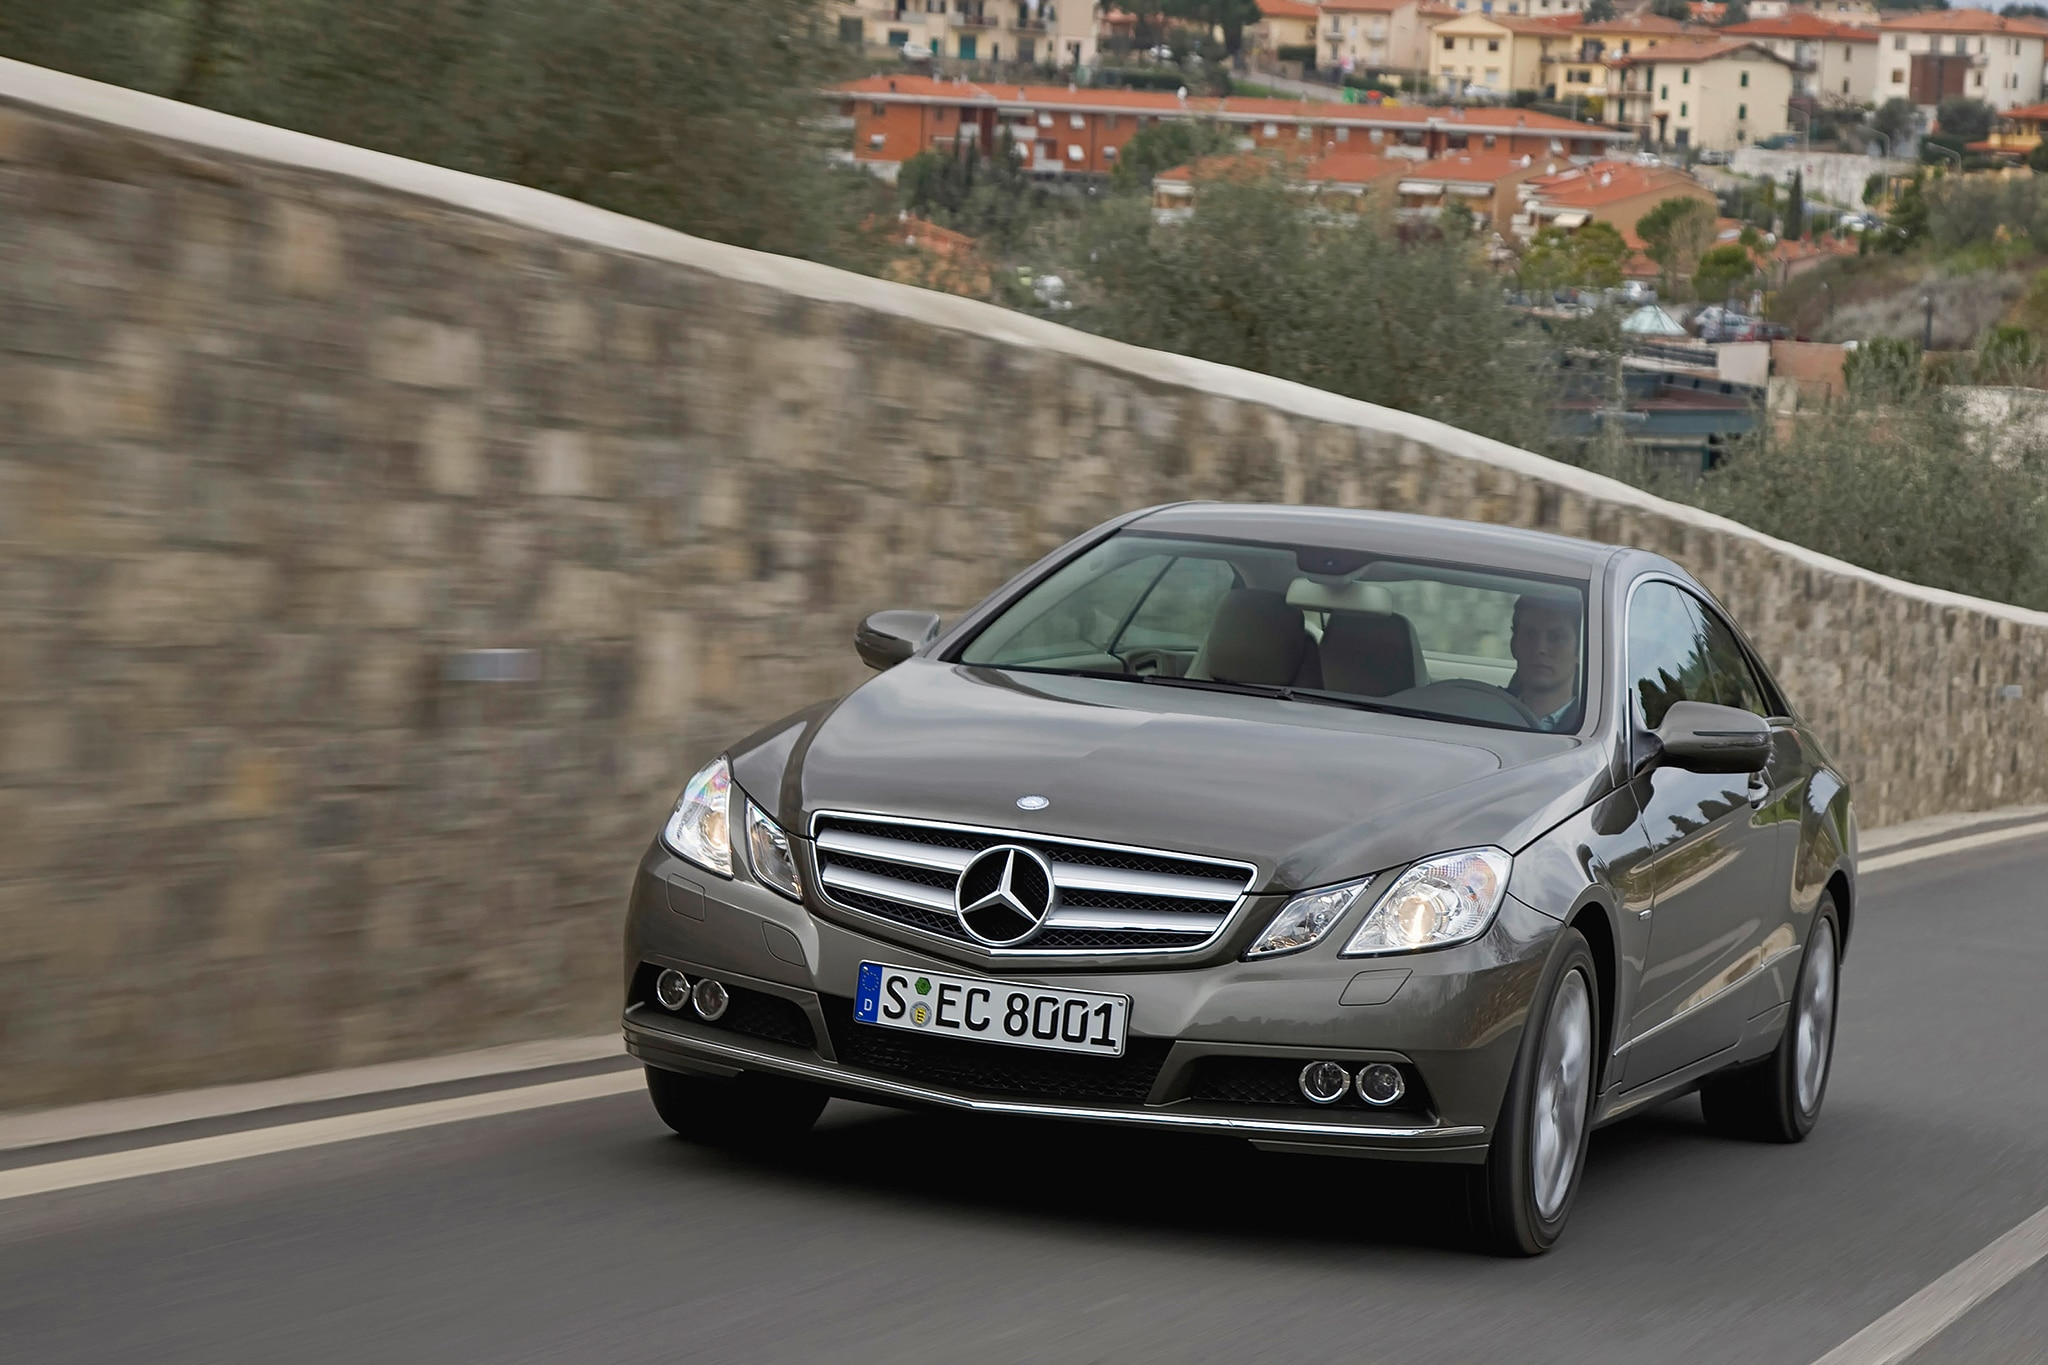 2014 mercedes benz e class first look automobile magazine for 2013 mercedes benz e class sedan